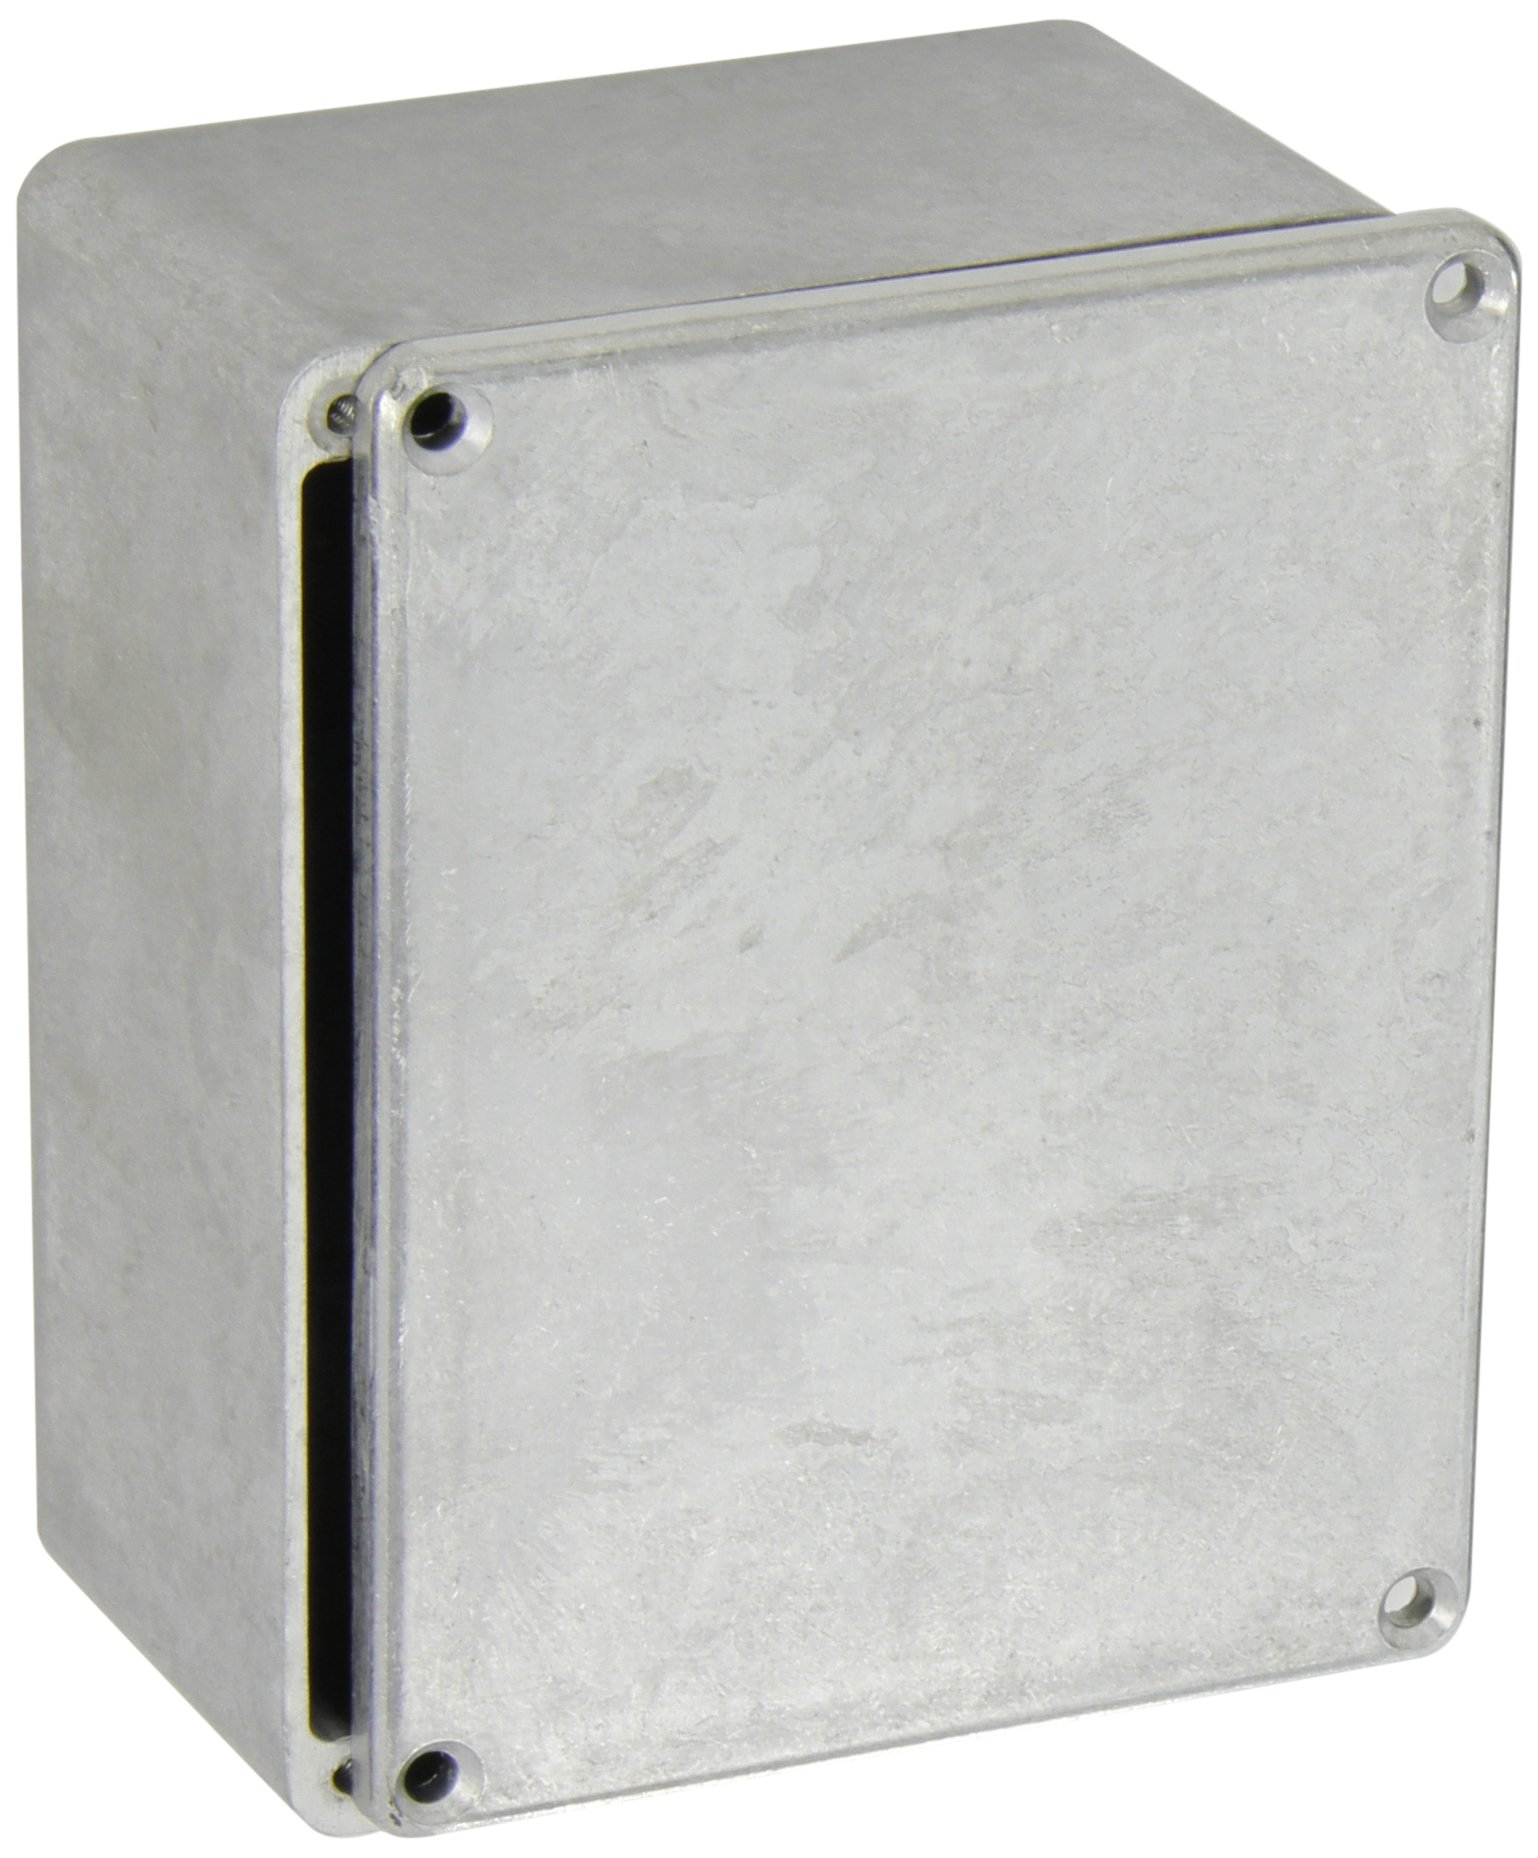 BUD Industries CN-5705 Die Cast Aluminum Enclosure, 4-17/32'' Length x 3-9/16'' Width x 2-7/32'' Height, Natural Finish